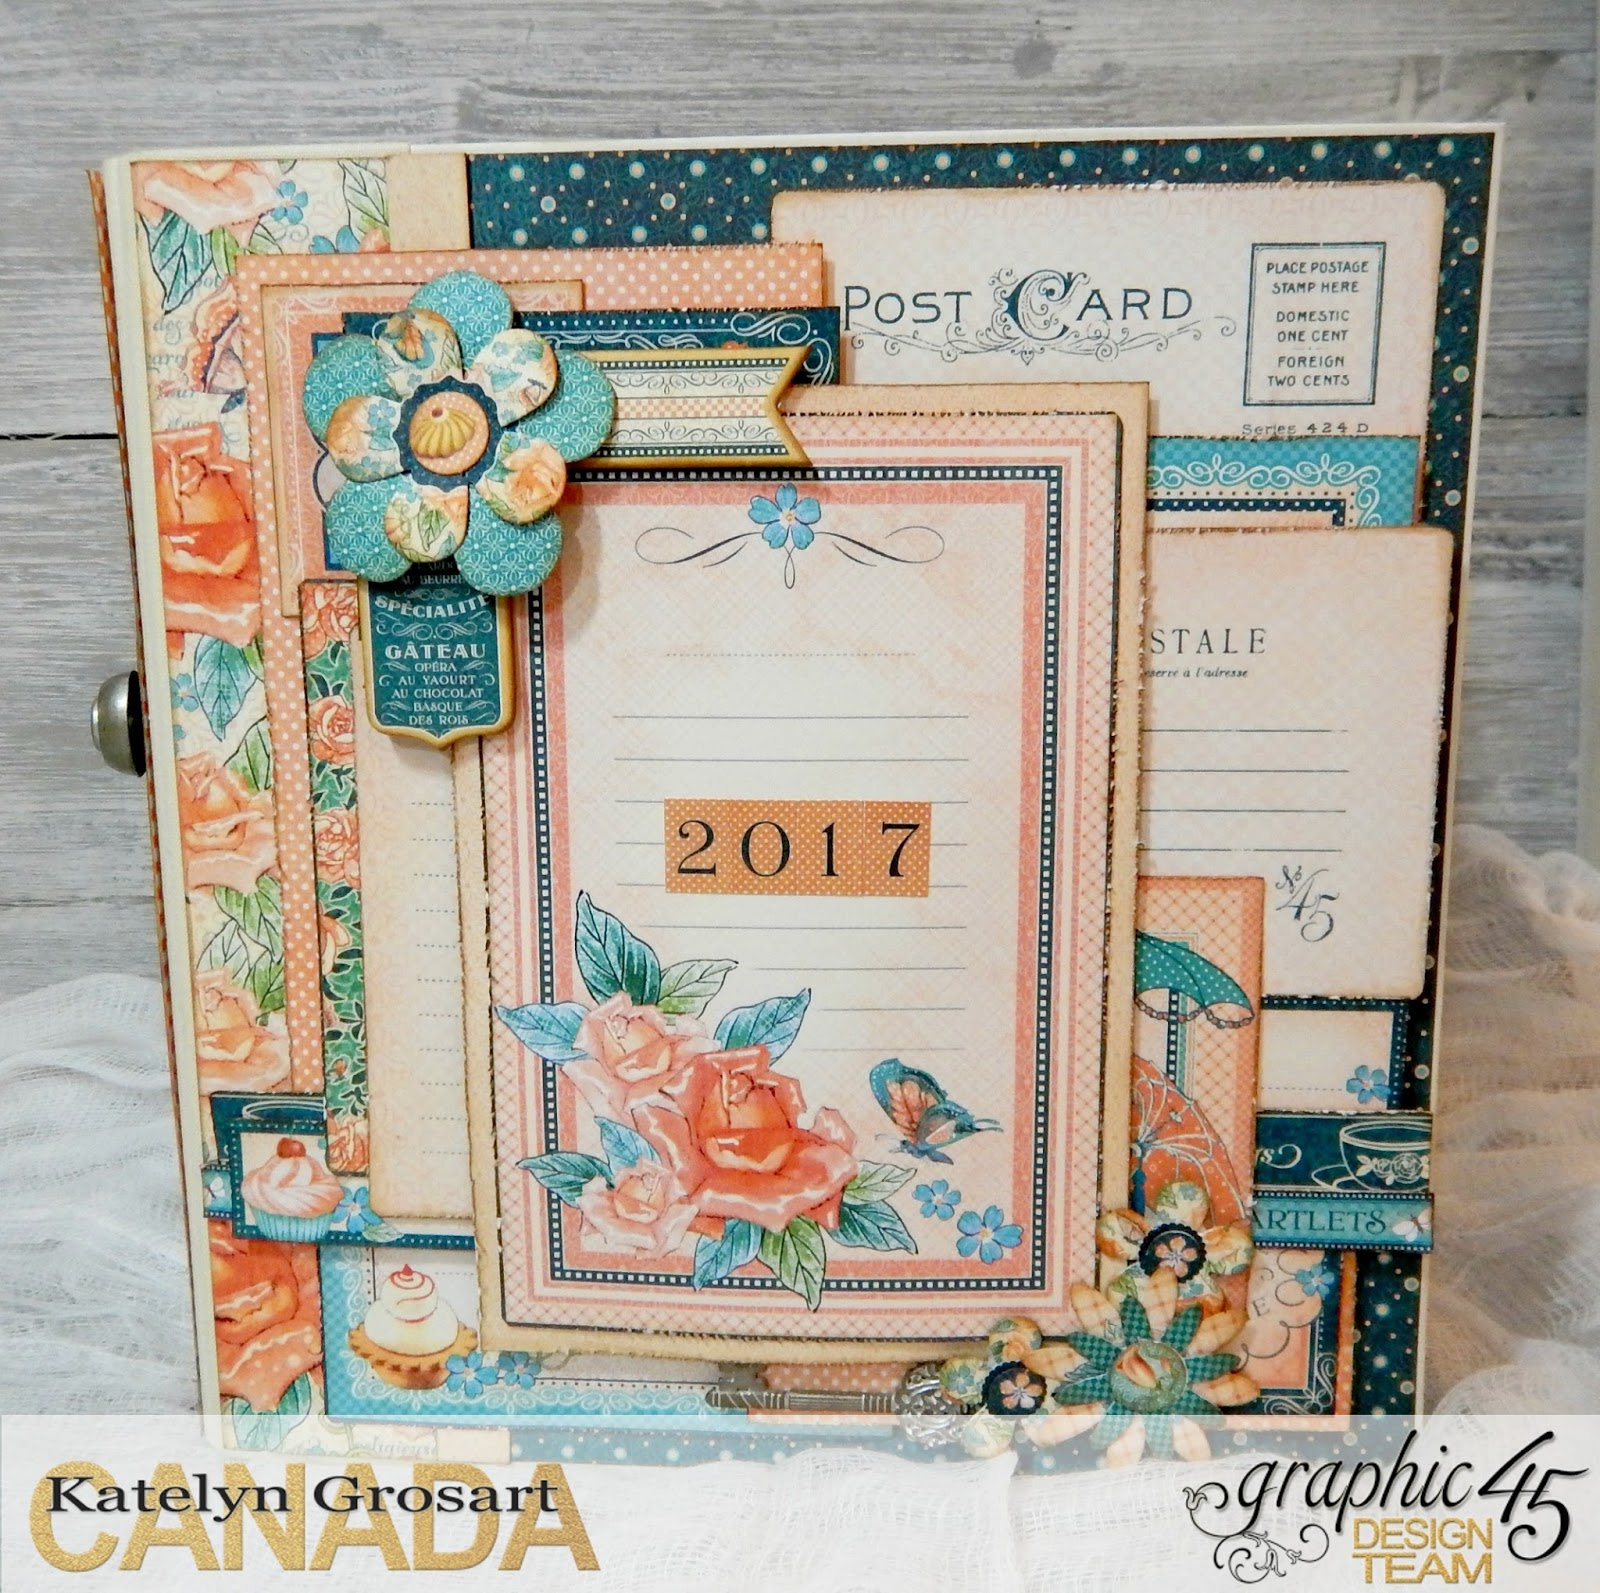 How to delete scrapbook photos google+ -  Scrapbook Those Special Moments During The Month Is So Important To Me You Ll Want To Head Over To The Graphic 45 Blog To Check Out The Rest Of The